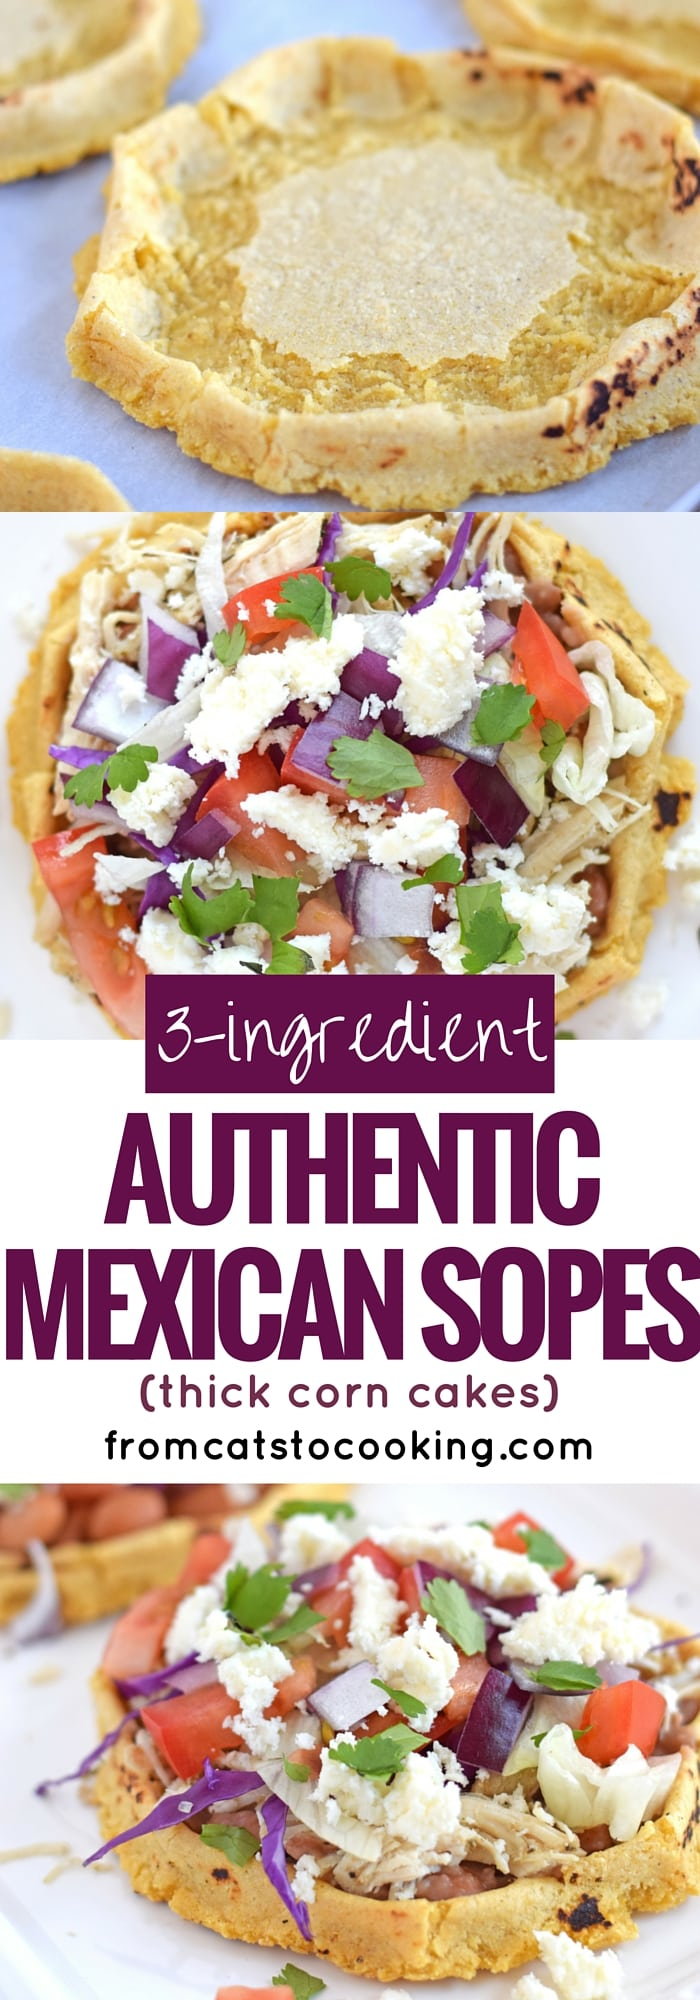 These sopes are made with only 3 ingredients and are perfect for topping with Mexican favorites like beans, cheese, carnitas, and more! They're gluten free, vegetarian, vegan and dairy free. They also make a great appetizer or have a couple for dinner. // isabeleats.com